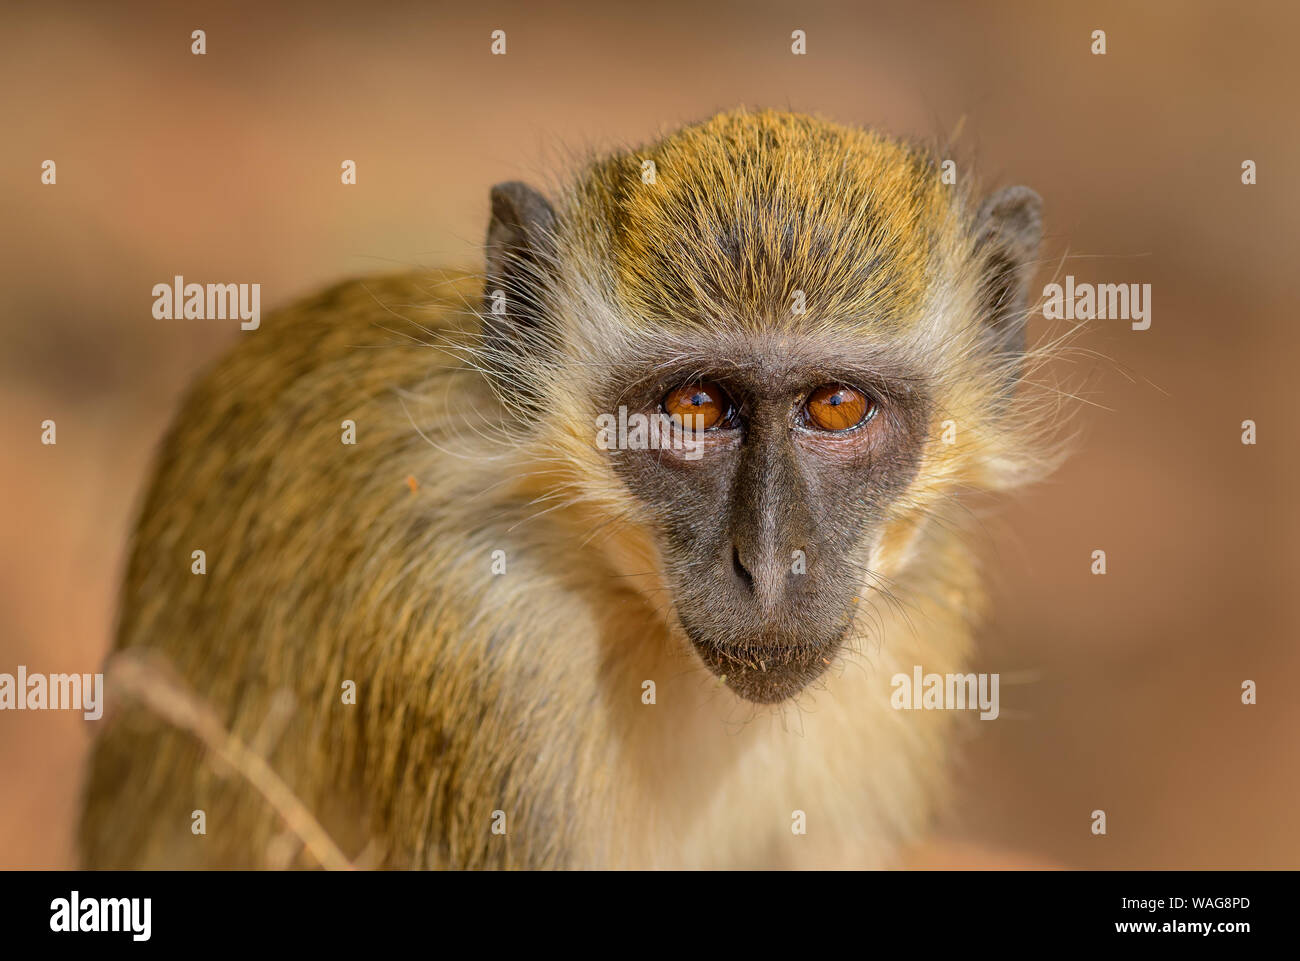 Green Monkey - Chlorocebus aethiops, beautiful popular monkey from West African bushes and forests, Senegal. Stock Photo